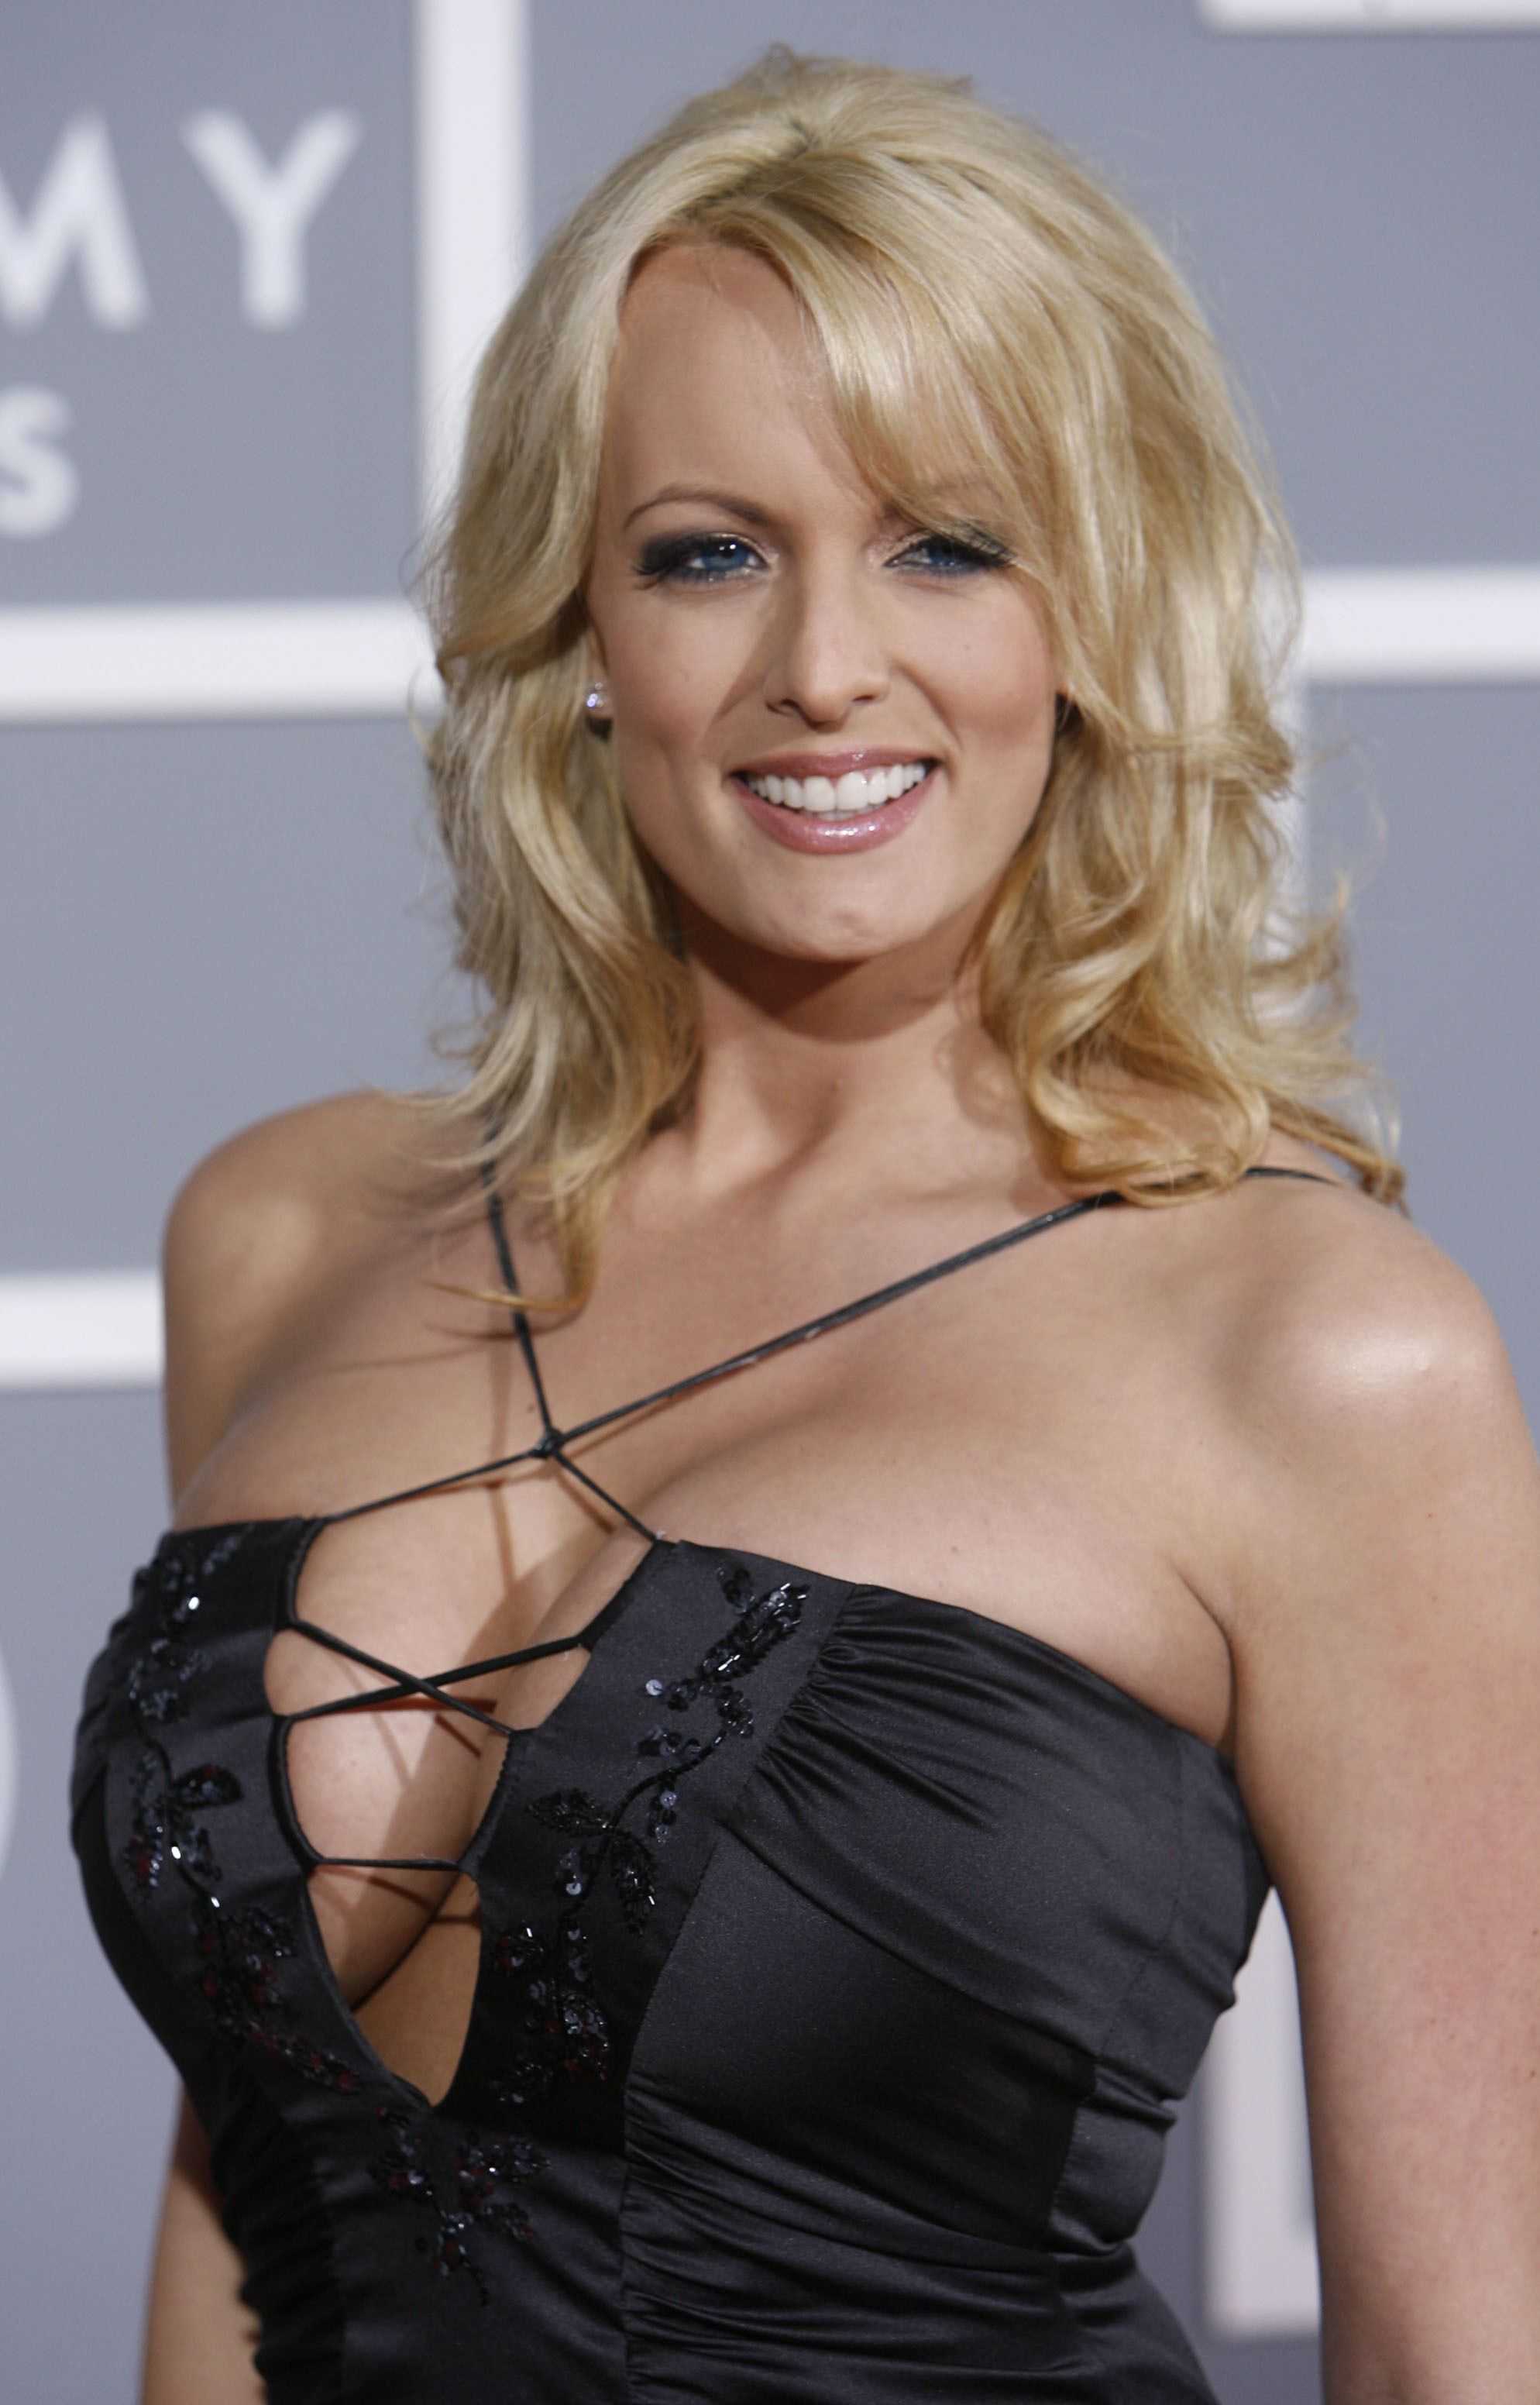 Will not porn star stormy daniels could